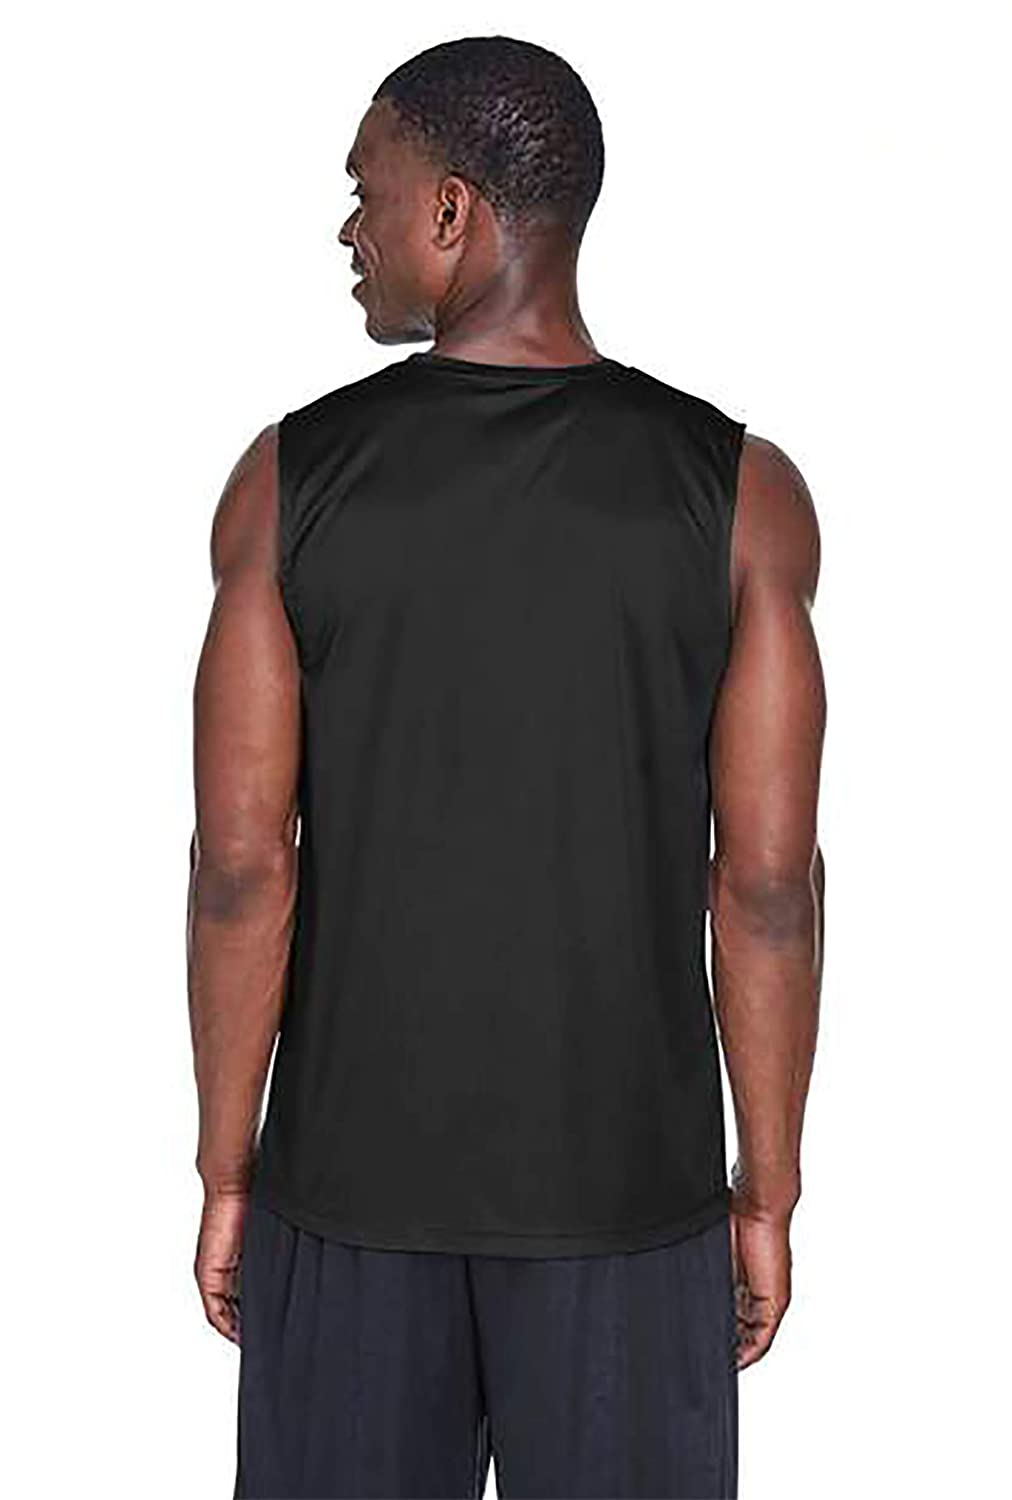 GCASST Soccer Ball on Fire and Water Flame 3D Printed Tank Tops Casual Vest for Men Boys